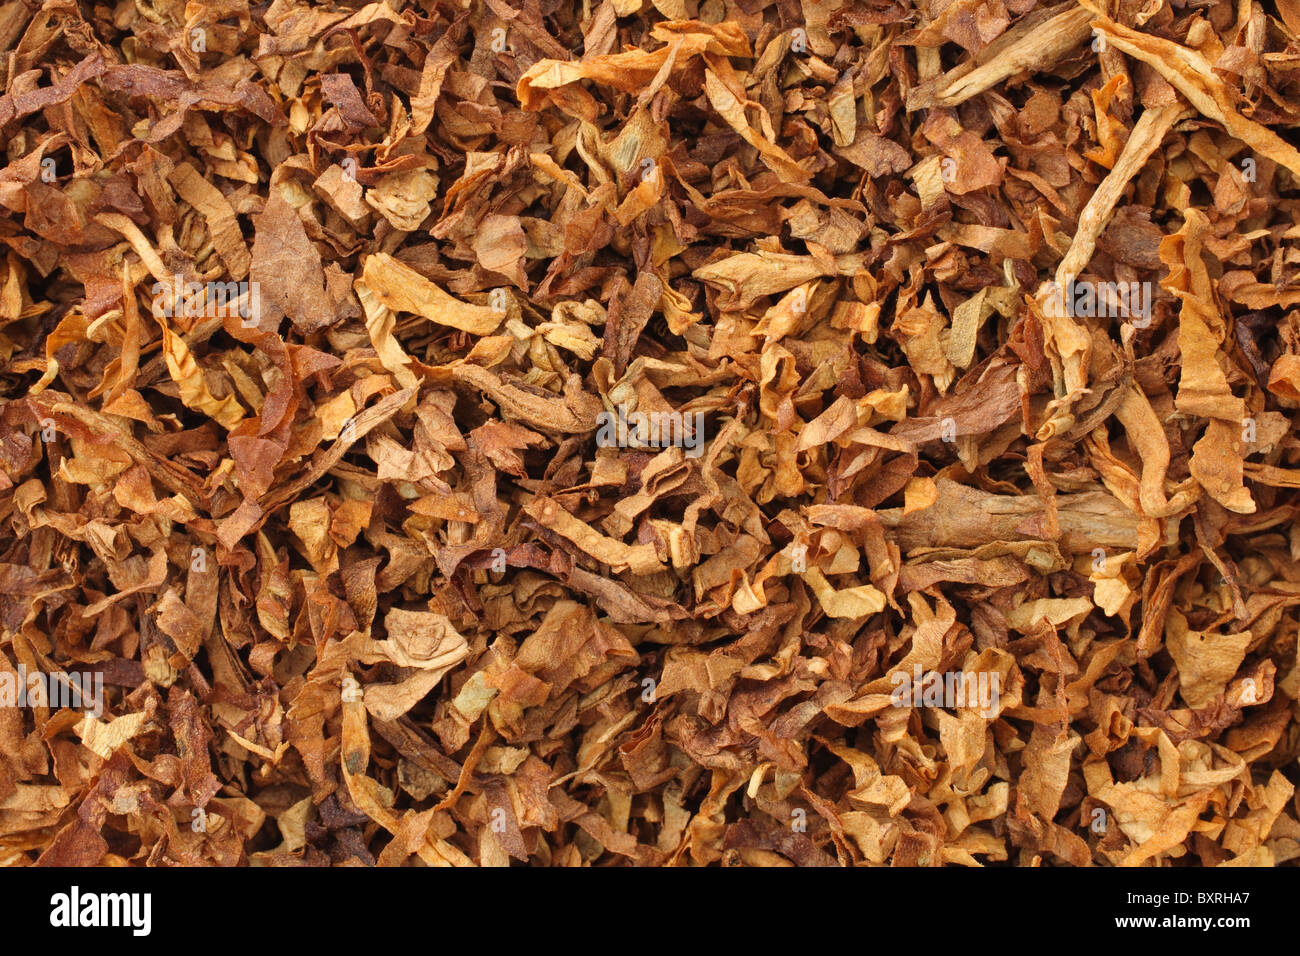 dried smoking tobacco leaves close-up macro view - Stock Image